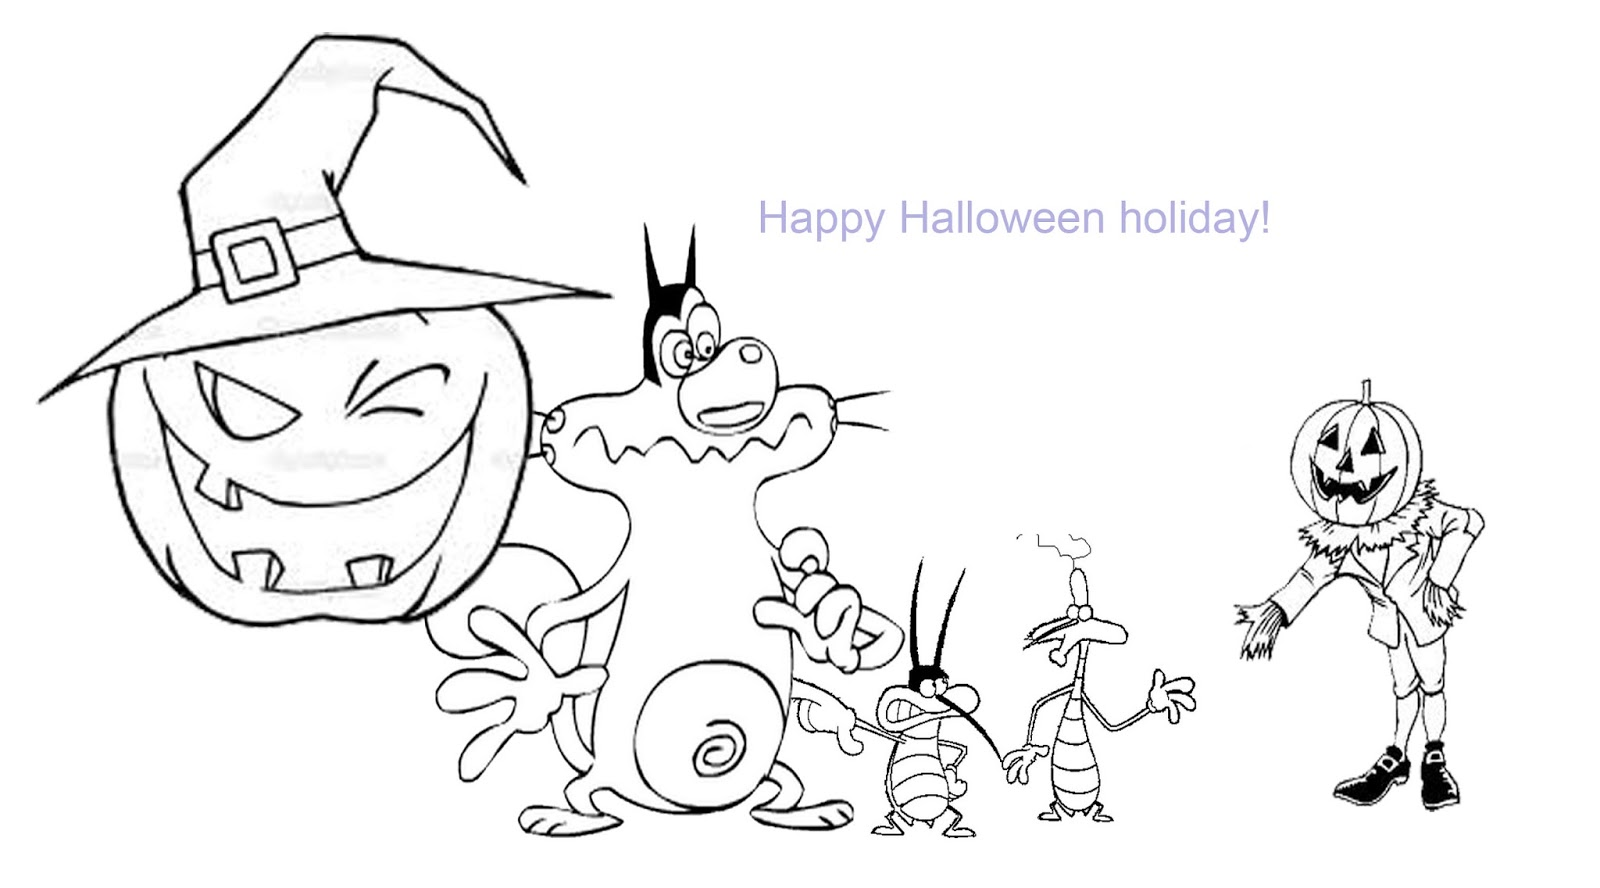 oggy and the cockroaches coloring pages for halloween